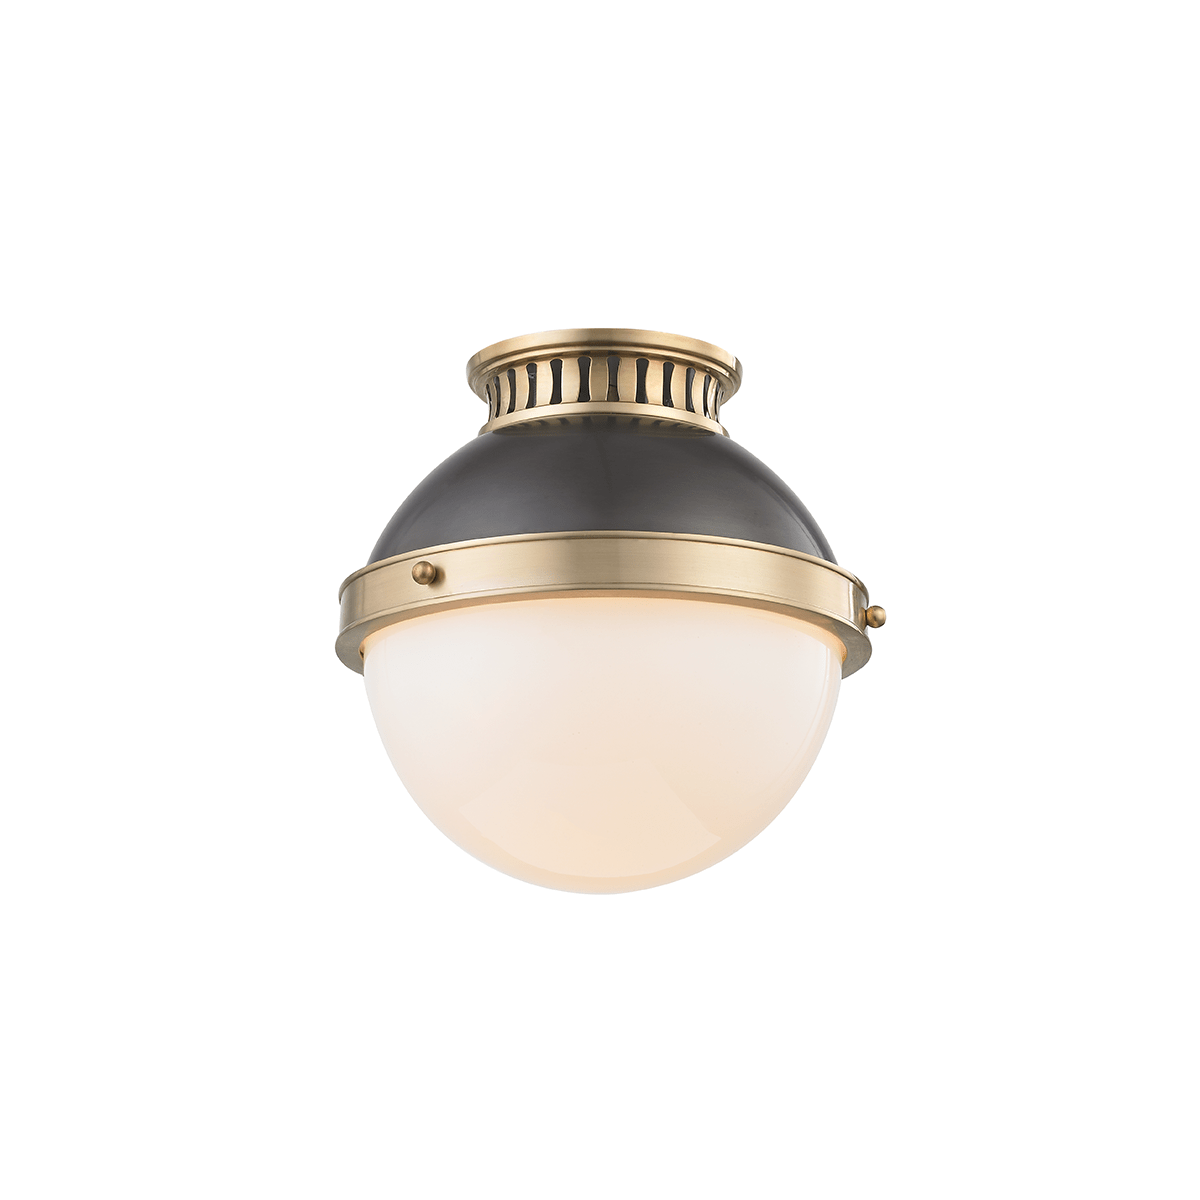 Hudson Valley Lighting Hudson Valley Lighting Latham Ceiling Lamp – Antique Distressed Bronze & Opal Shiny 4009-ADB